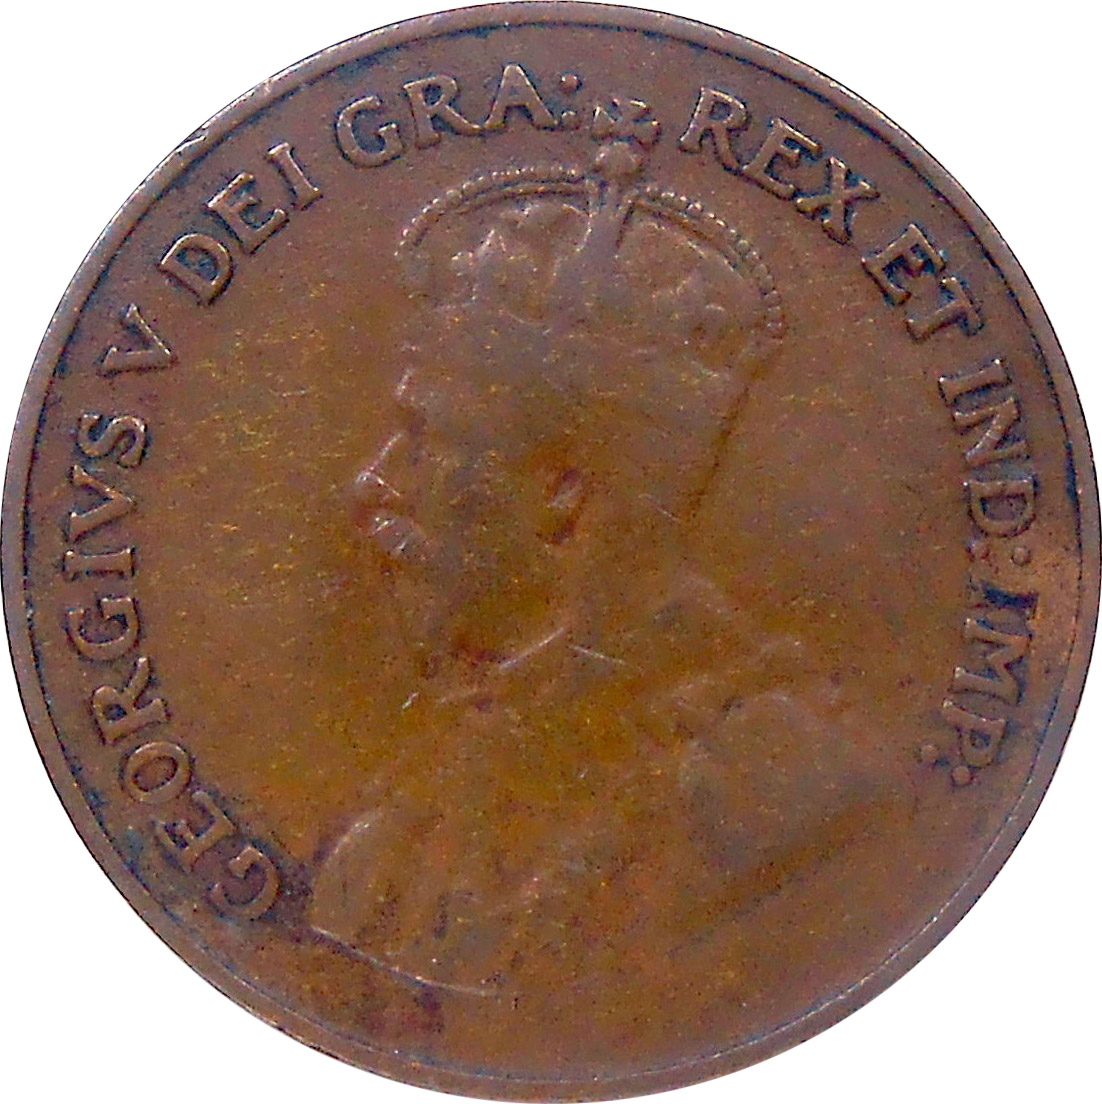 VG-8 - 1 cent 1920 to 1936 - George V